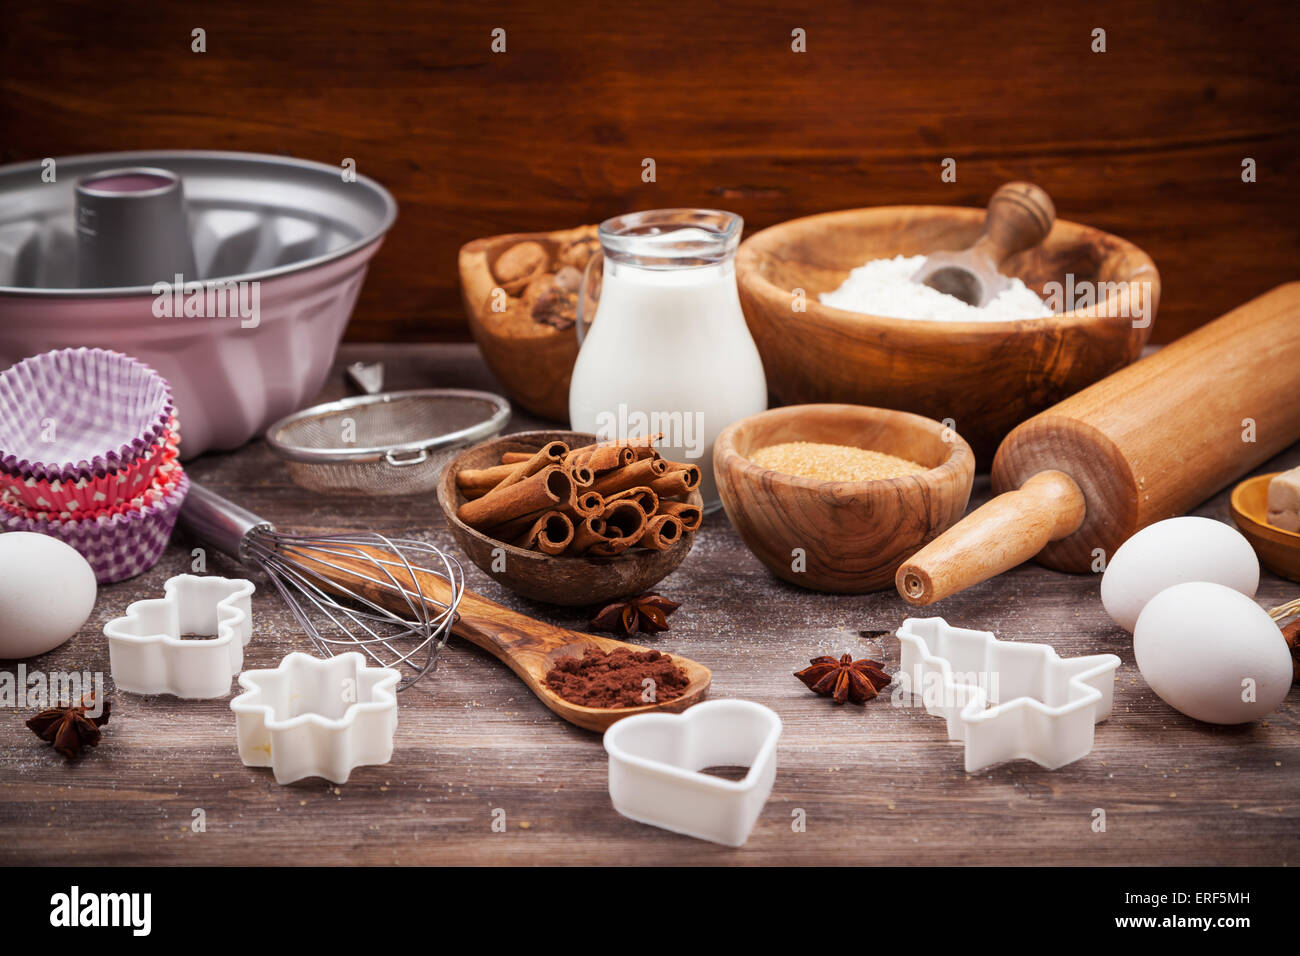 Baking utensils with ingredients for cake or cookies - Stock Image